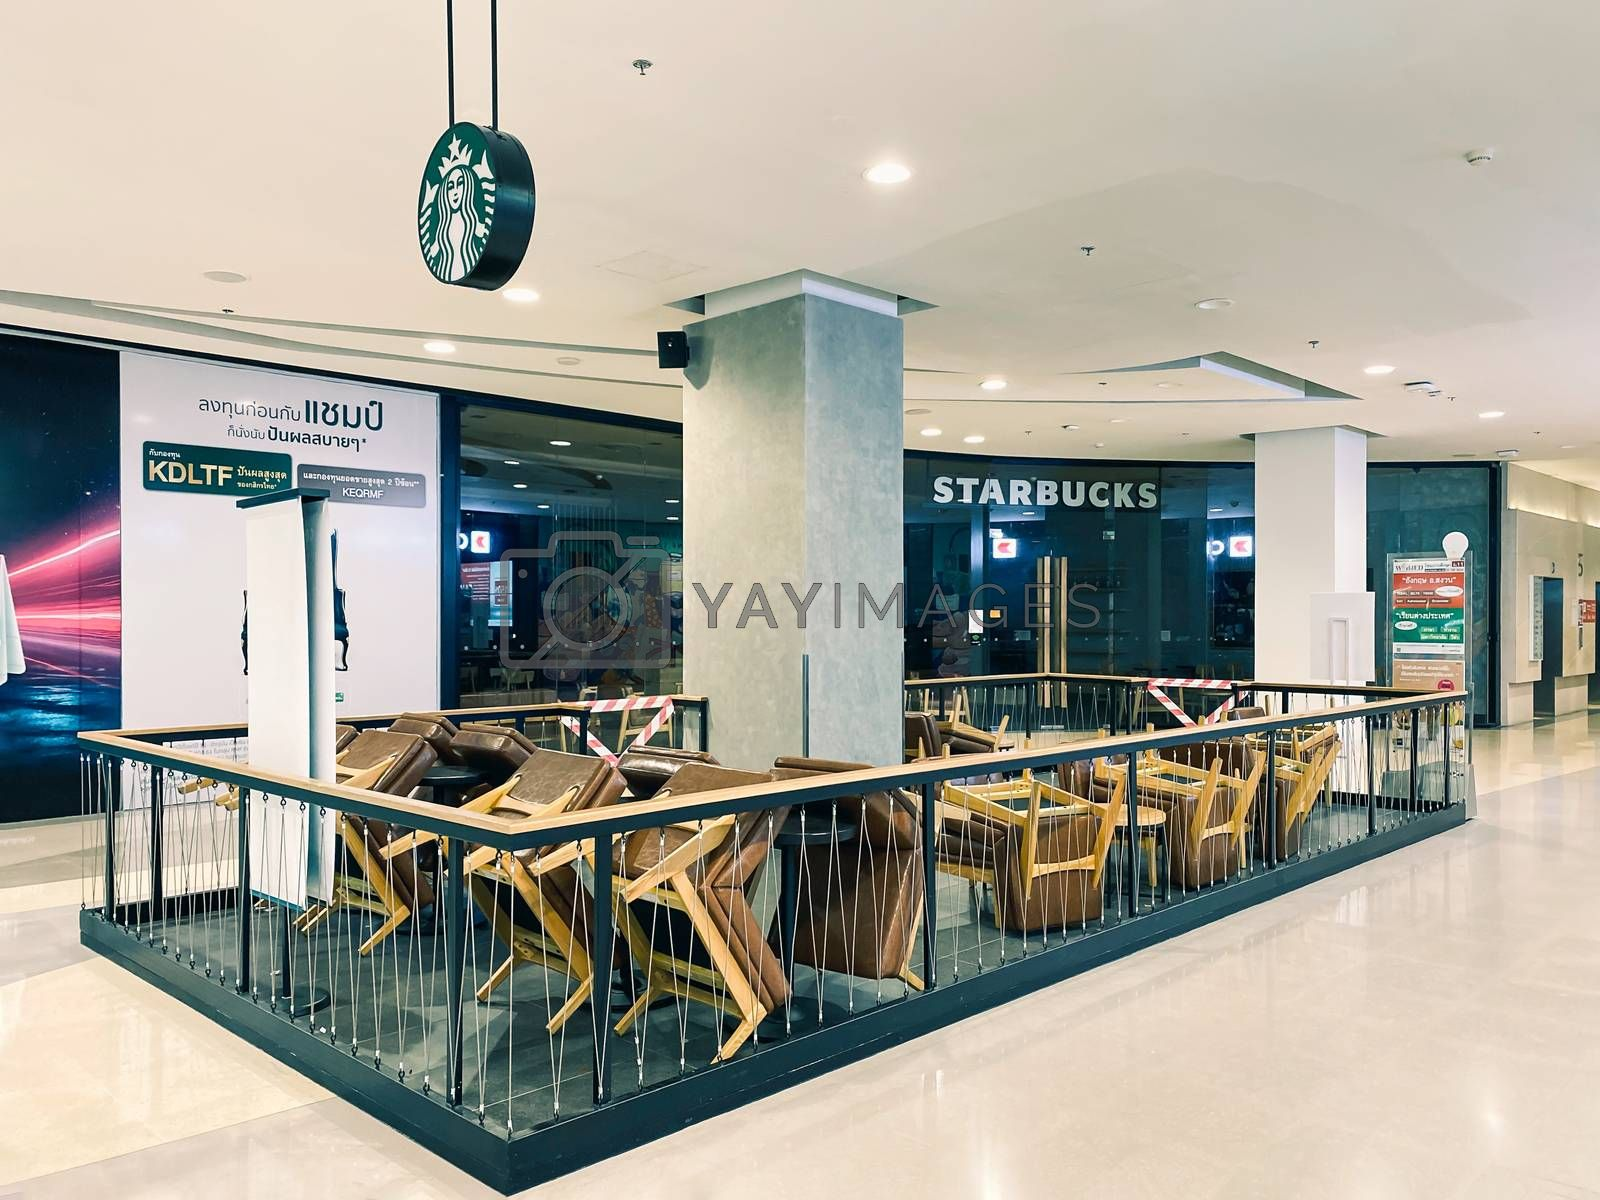 Starbucks coffee in shopping mall in Bangkok closed during COVID-19 situation. Starbucks is temporarily shuttering many shops because of the coronavirus pandemic